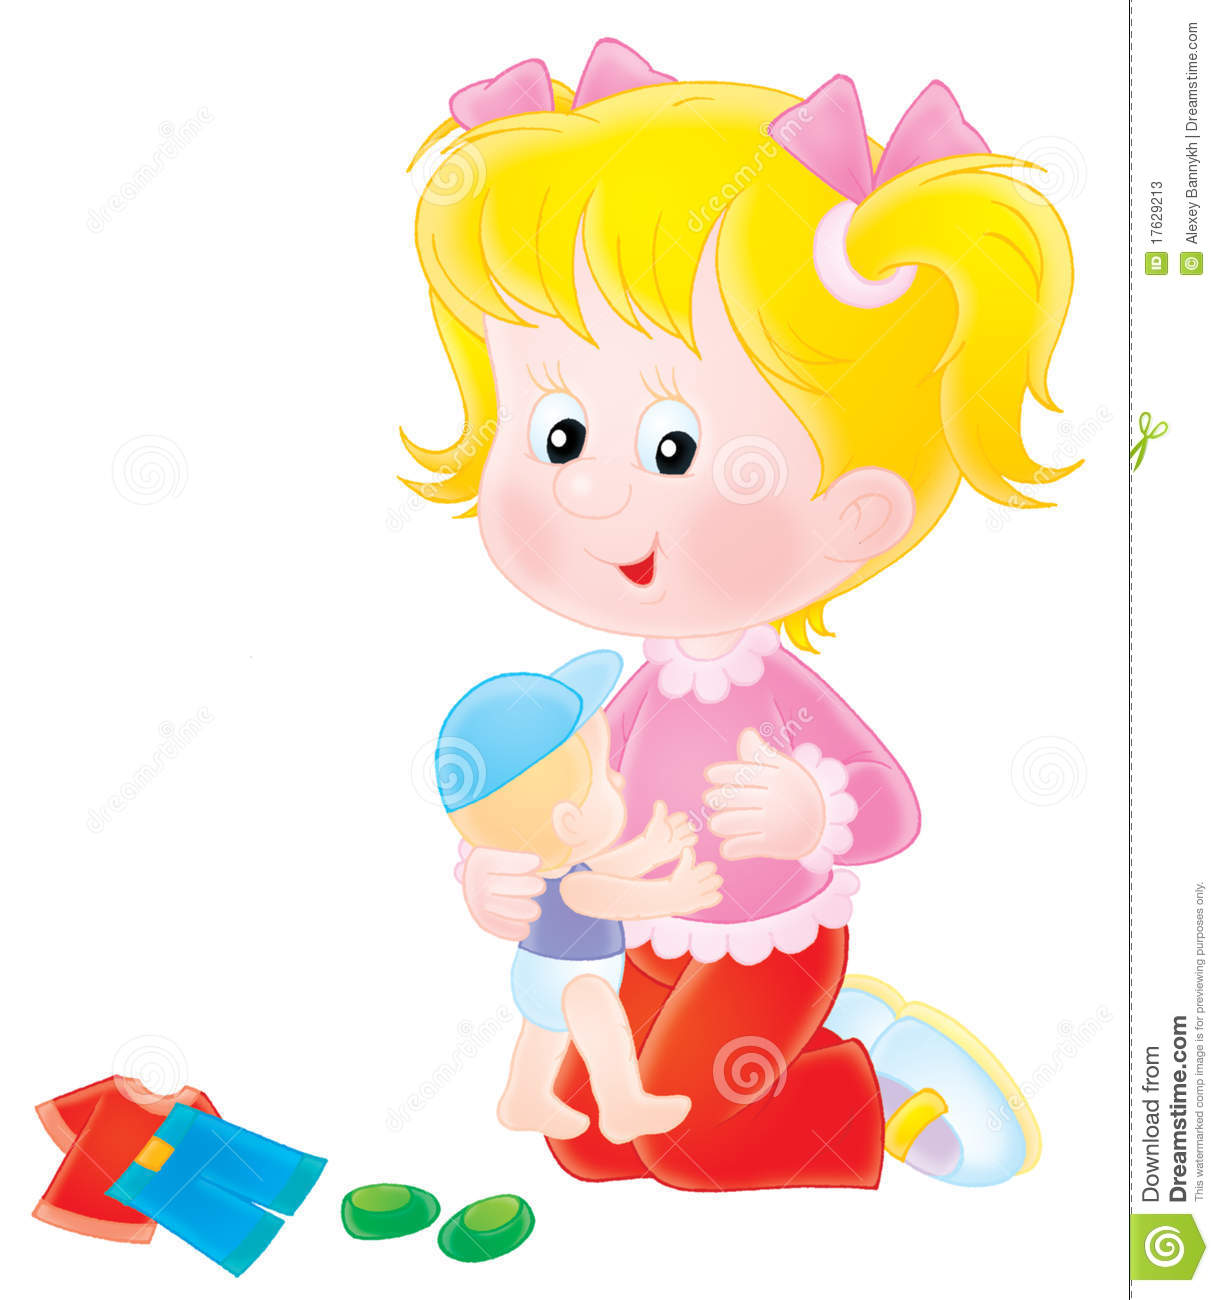 Doll Clipart Stock Illustrations 2 578 Doll Clipart Stock Illustrations Vectors Clipart Dreamstime